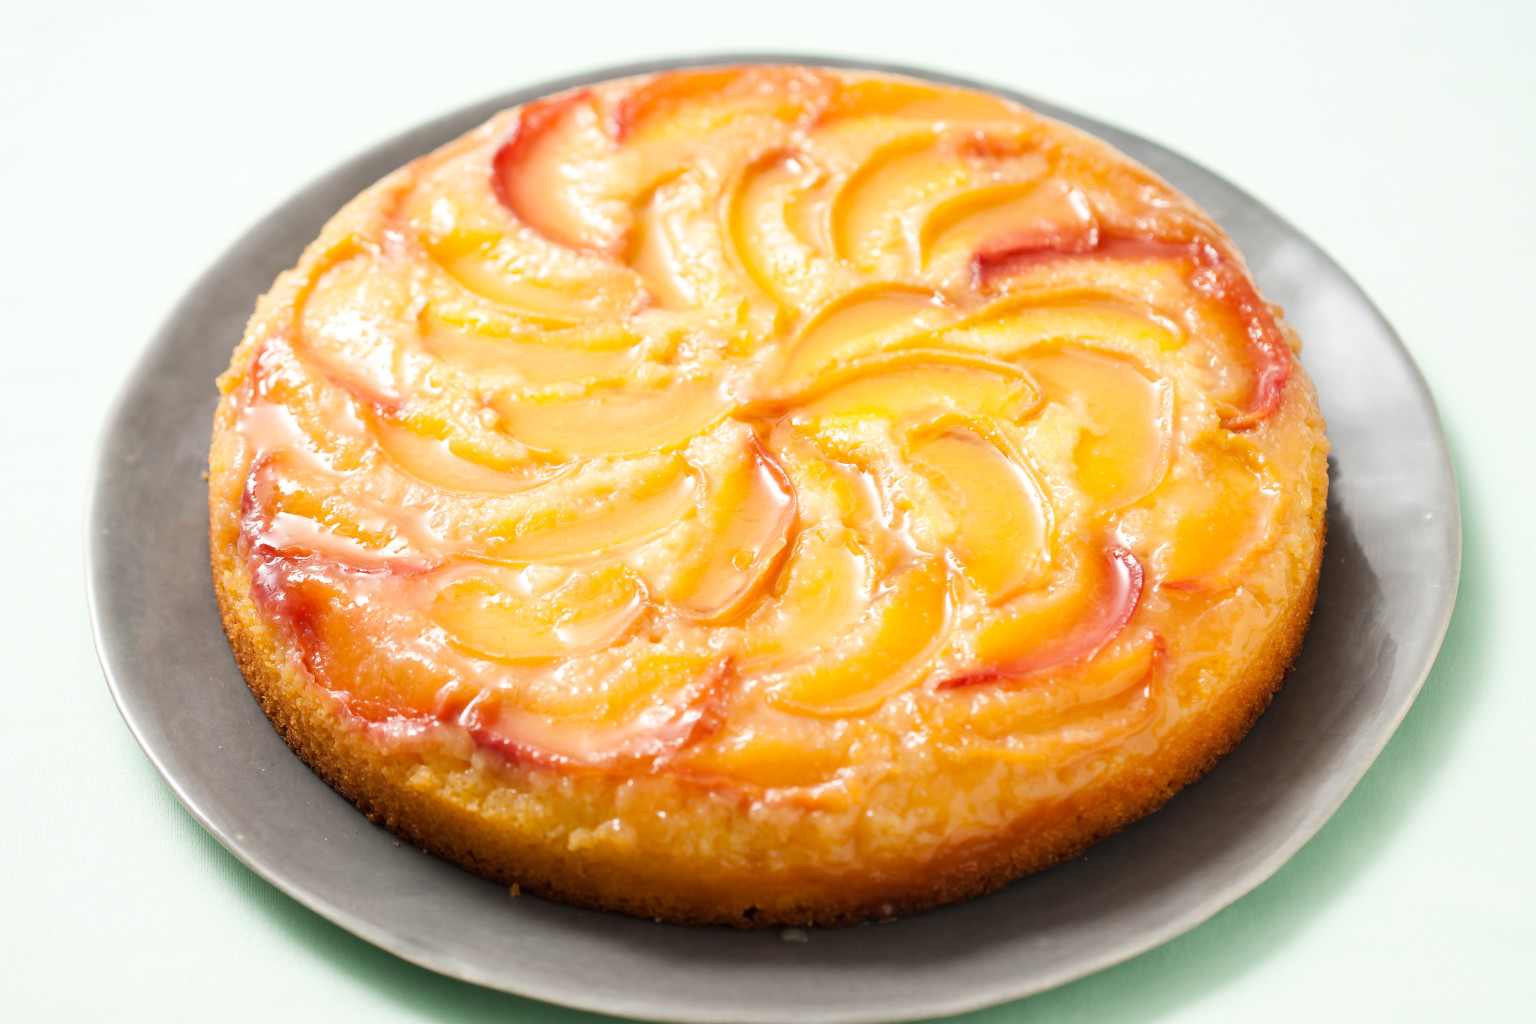 Cake Recipe Using Canned Peaches